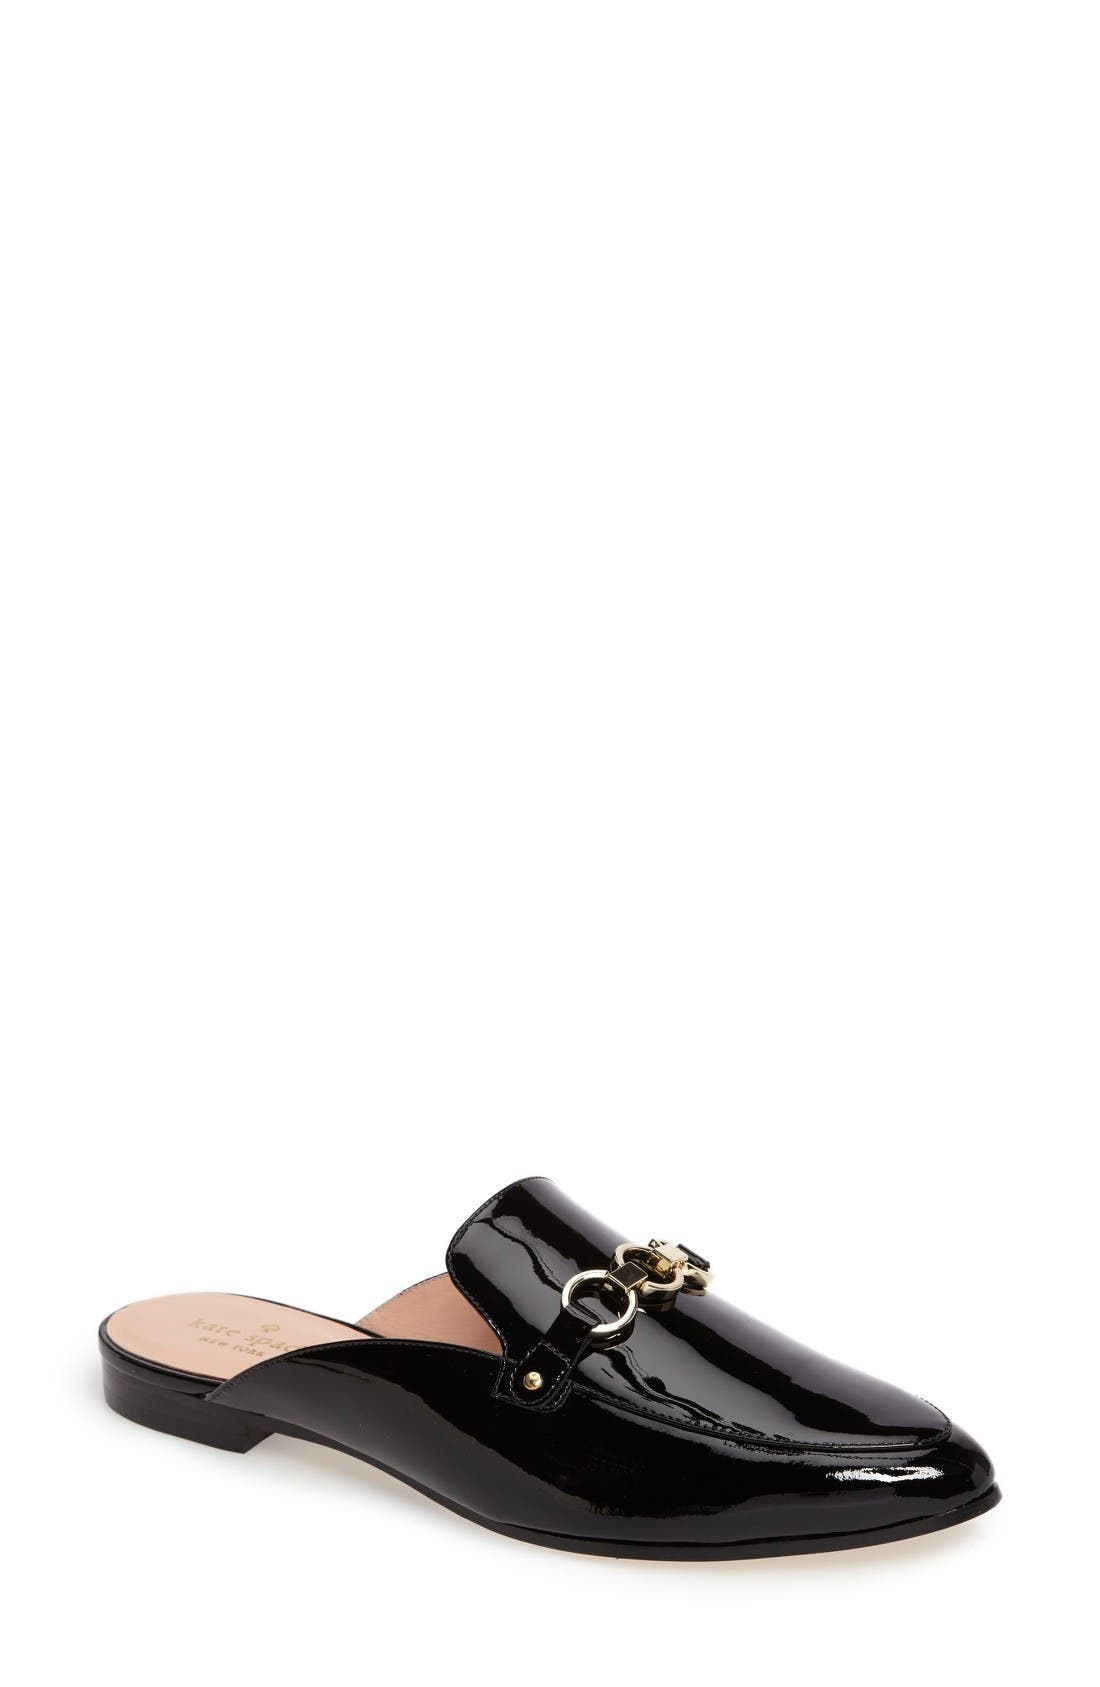 kate spade new york cece mule (Women)